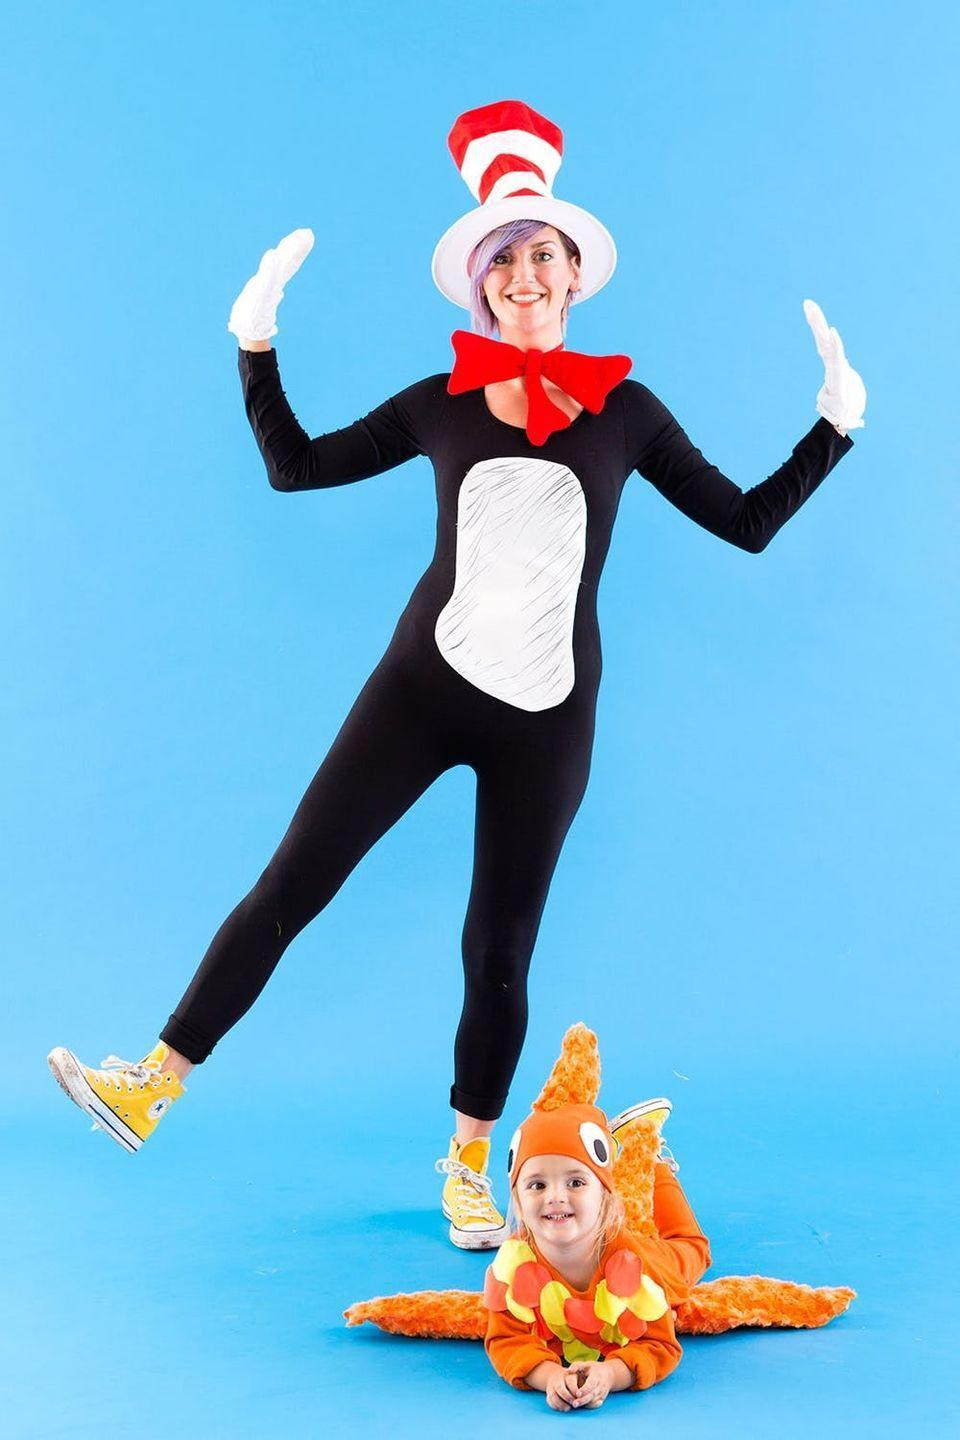 "<p>We're obsessed with this adorable DIY <em>The Cat in the Hat </em>costume — just look at that little goldfish!</p><p><a class=""link rapid-noclick-resp"" href=""https://www.amazon.com/gp/product/B004NIIKB6?tag=syn-yahoo-20&ascsubtag=%5Bartid%7C10055.g.22127013%5Bsrc%7Cyahoo-us"" rel=""nofollow noopener"" target=""_blank"" data-ylk=""slk:Shop 'Cat in the Hat' accessories"">Shop 'Cat in the Hat' accessories</a></p><p><em><a href=""https://www.brit.co/dr-seuss-cat-in-the-hat-goldfish-halloween-costumes/"" rel=""nofollow noopener"" target=""_blank"" data-ylk=""slk:Get the tutorial from Brit + Co. »"" class=""link rapid-noclick-resp"">Get the tutorial from Brit + Co. »</a></em></p>"